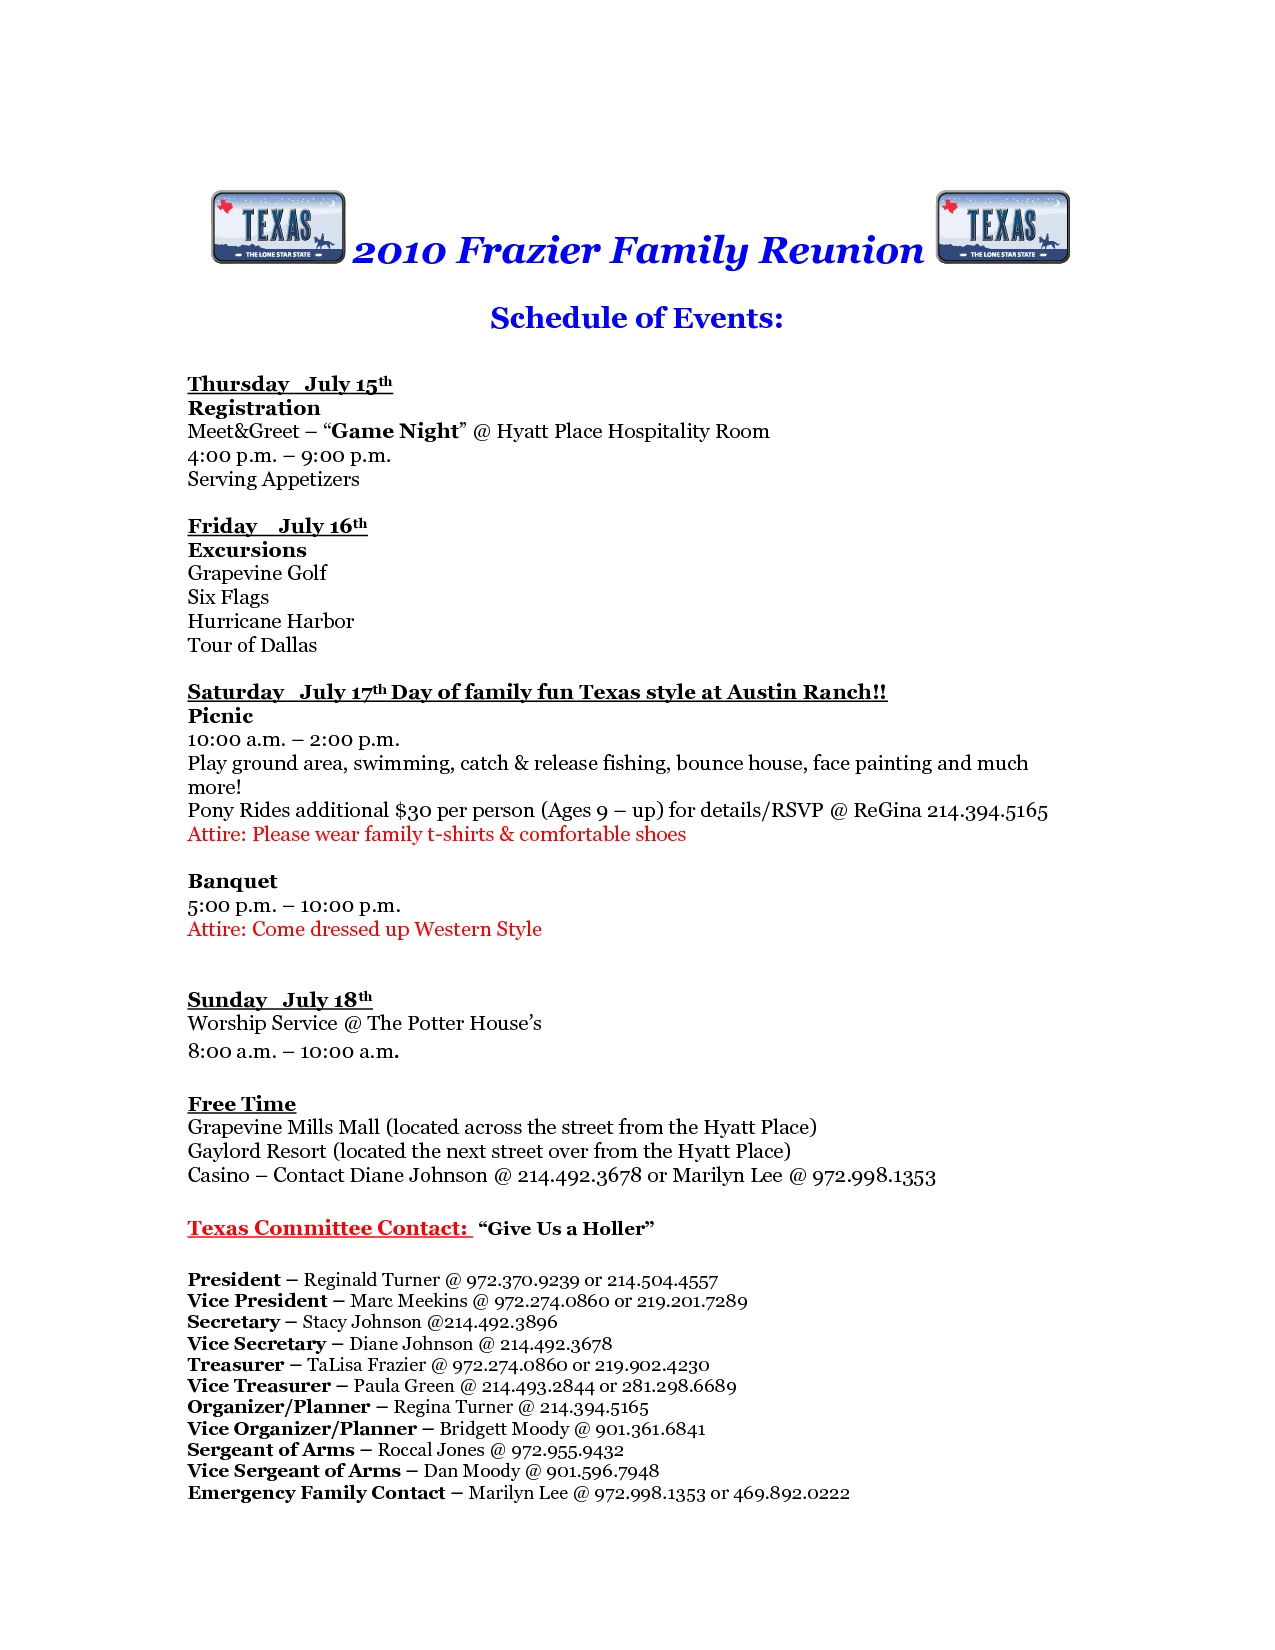 Free Printable Family Reunion Letters | 2010 Frazier Family Reunion Weekend  Itinerary  Free Printable Family Reunion Templates